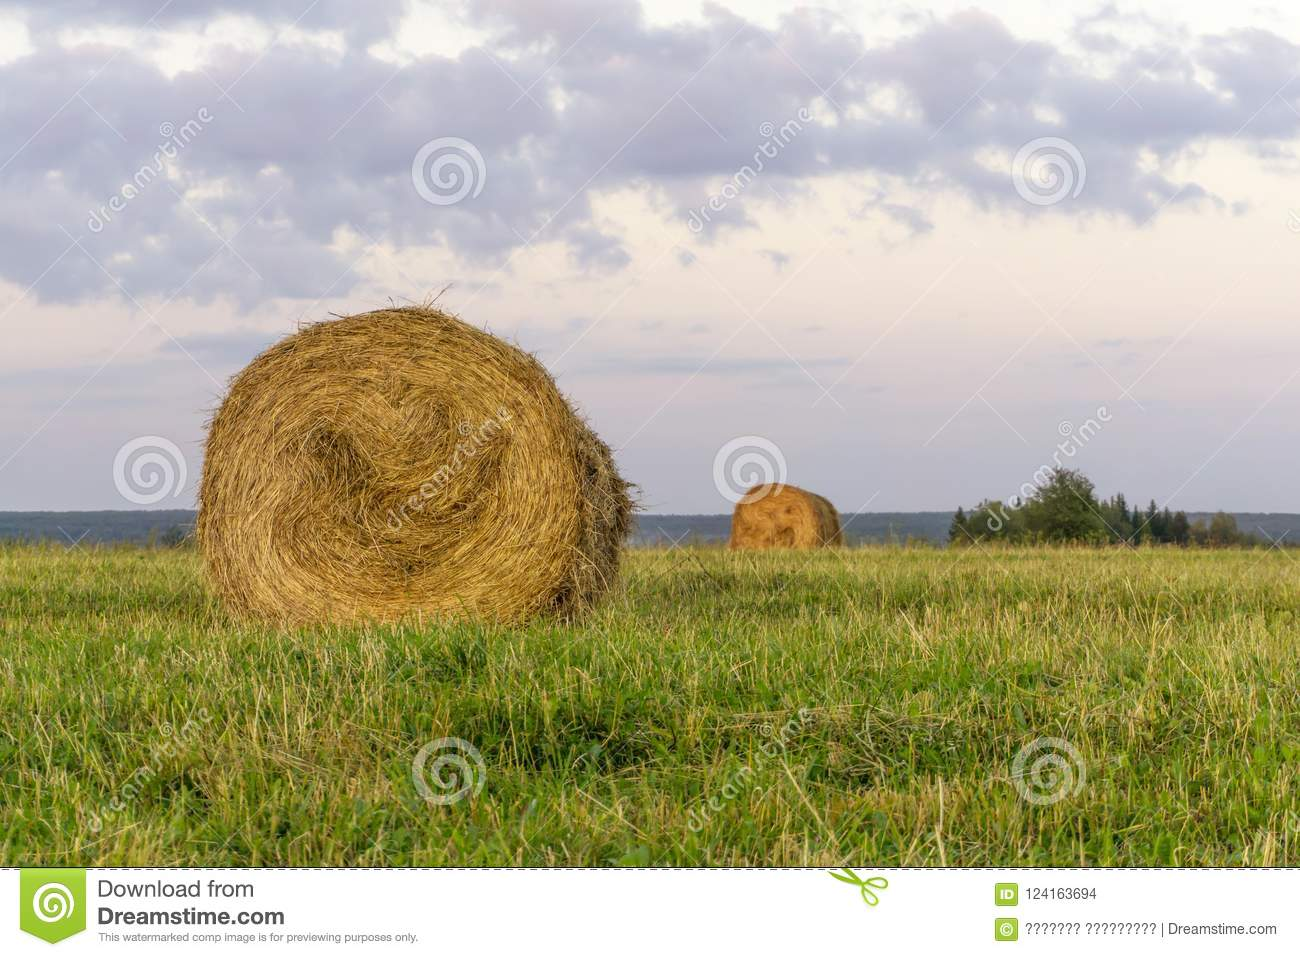 Round bales of hay on a beveled meadow